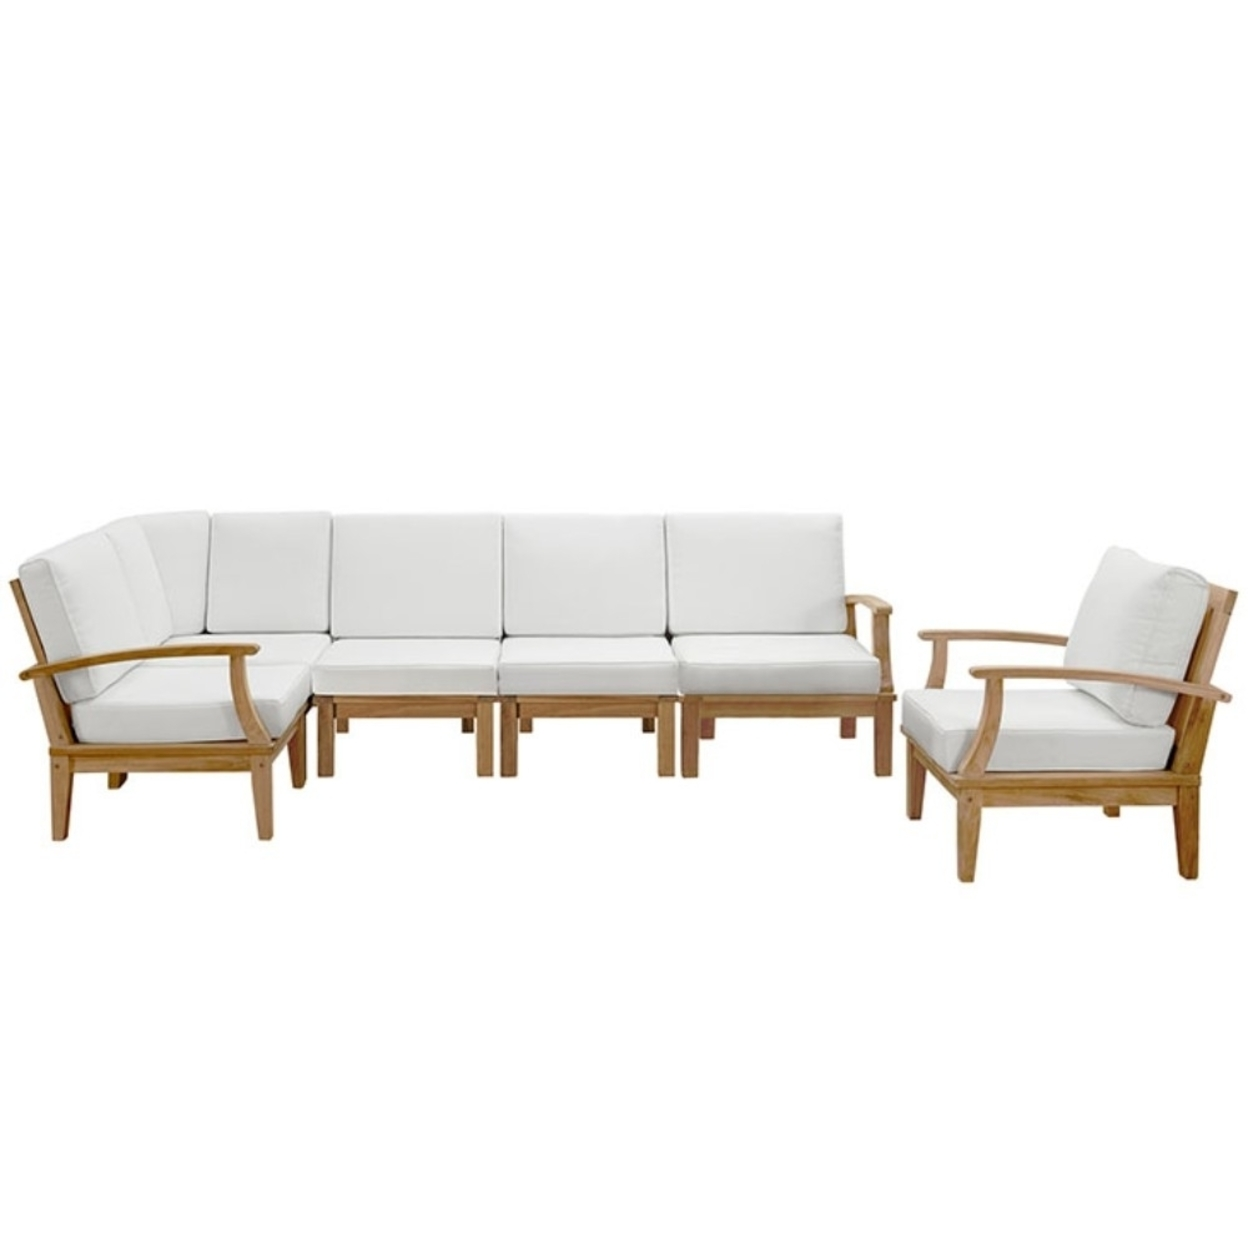 Marina 6 Piece Outdoor Patio Teak Sofa Set, Natural White 59a7a0702a00e45d3605aa7a